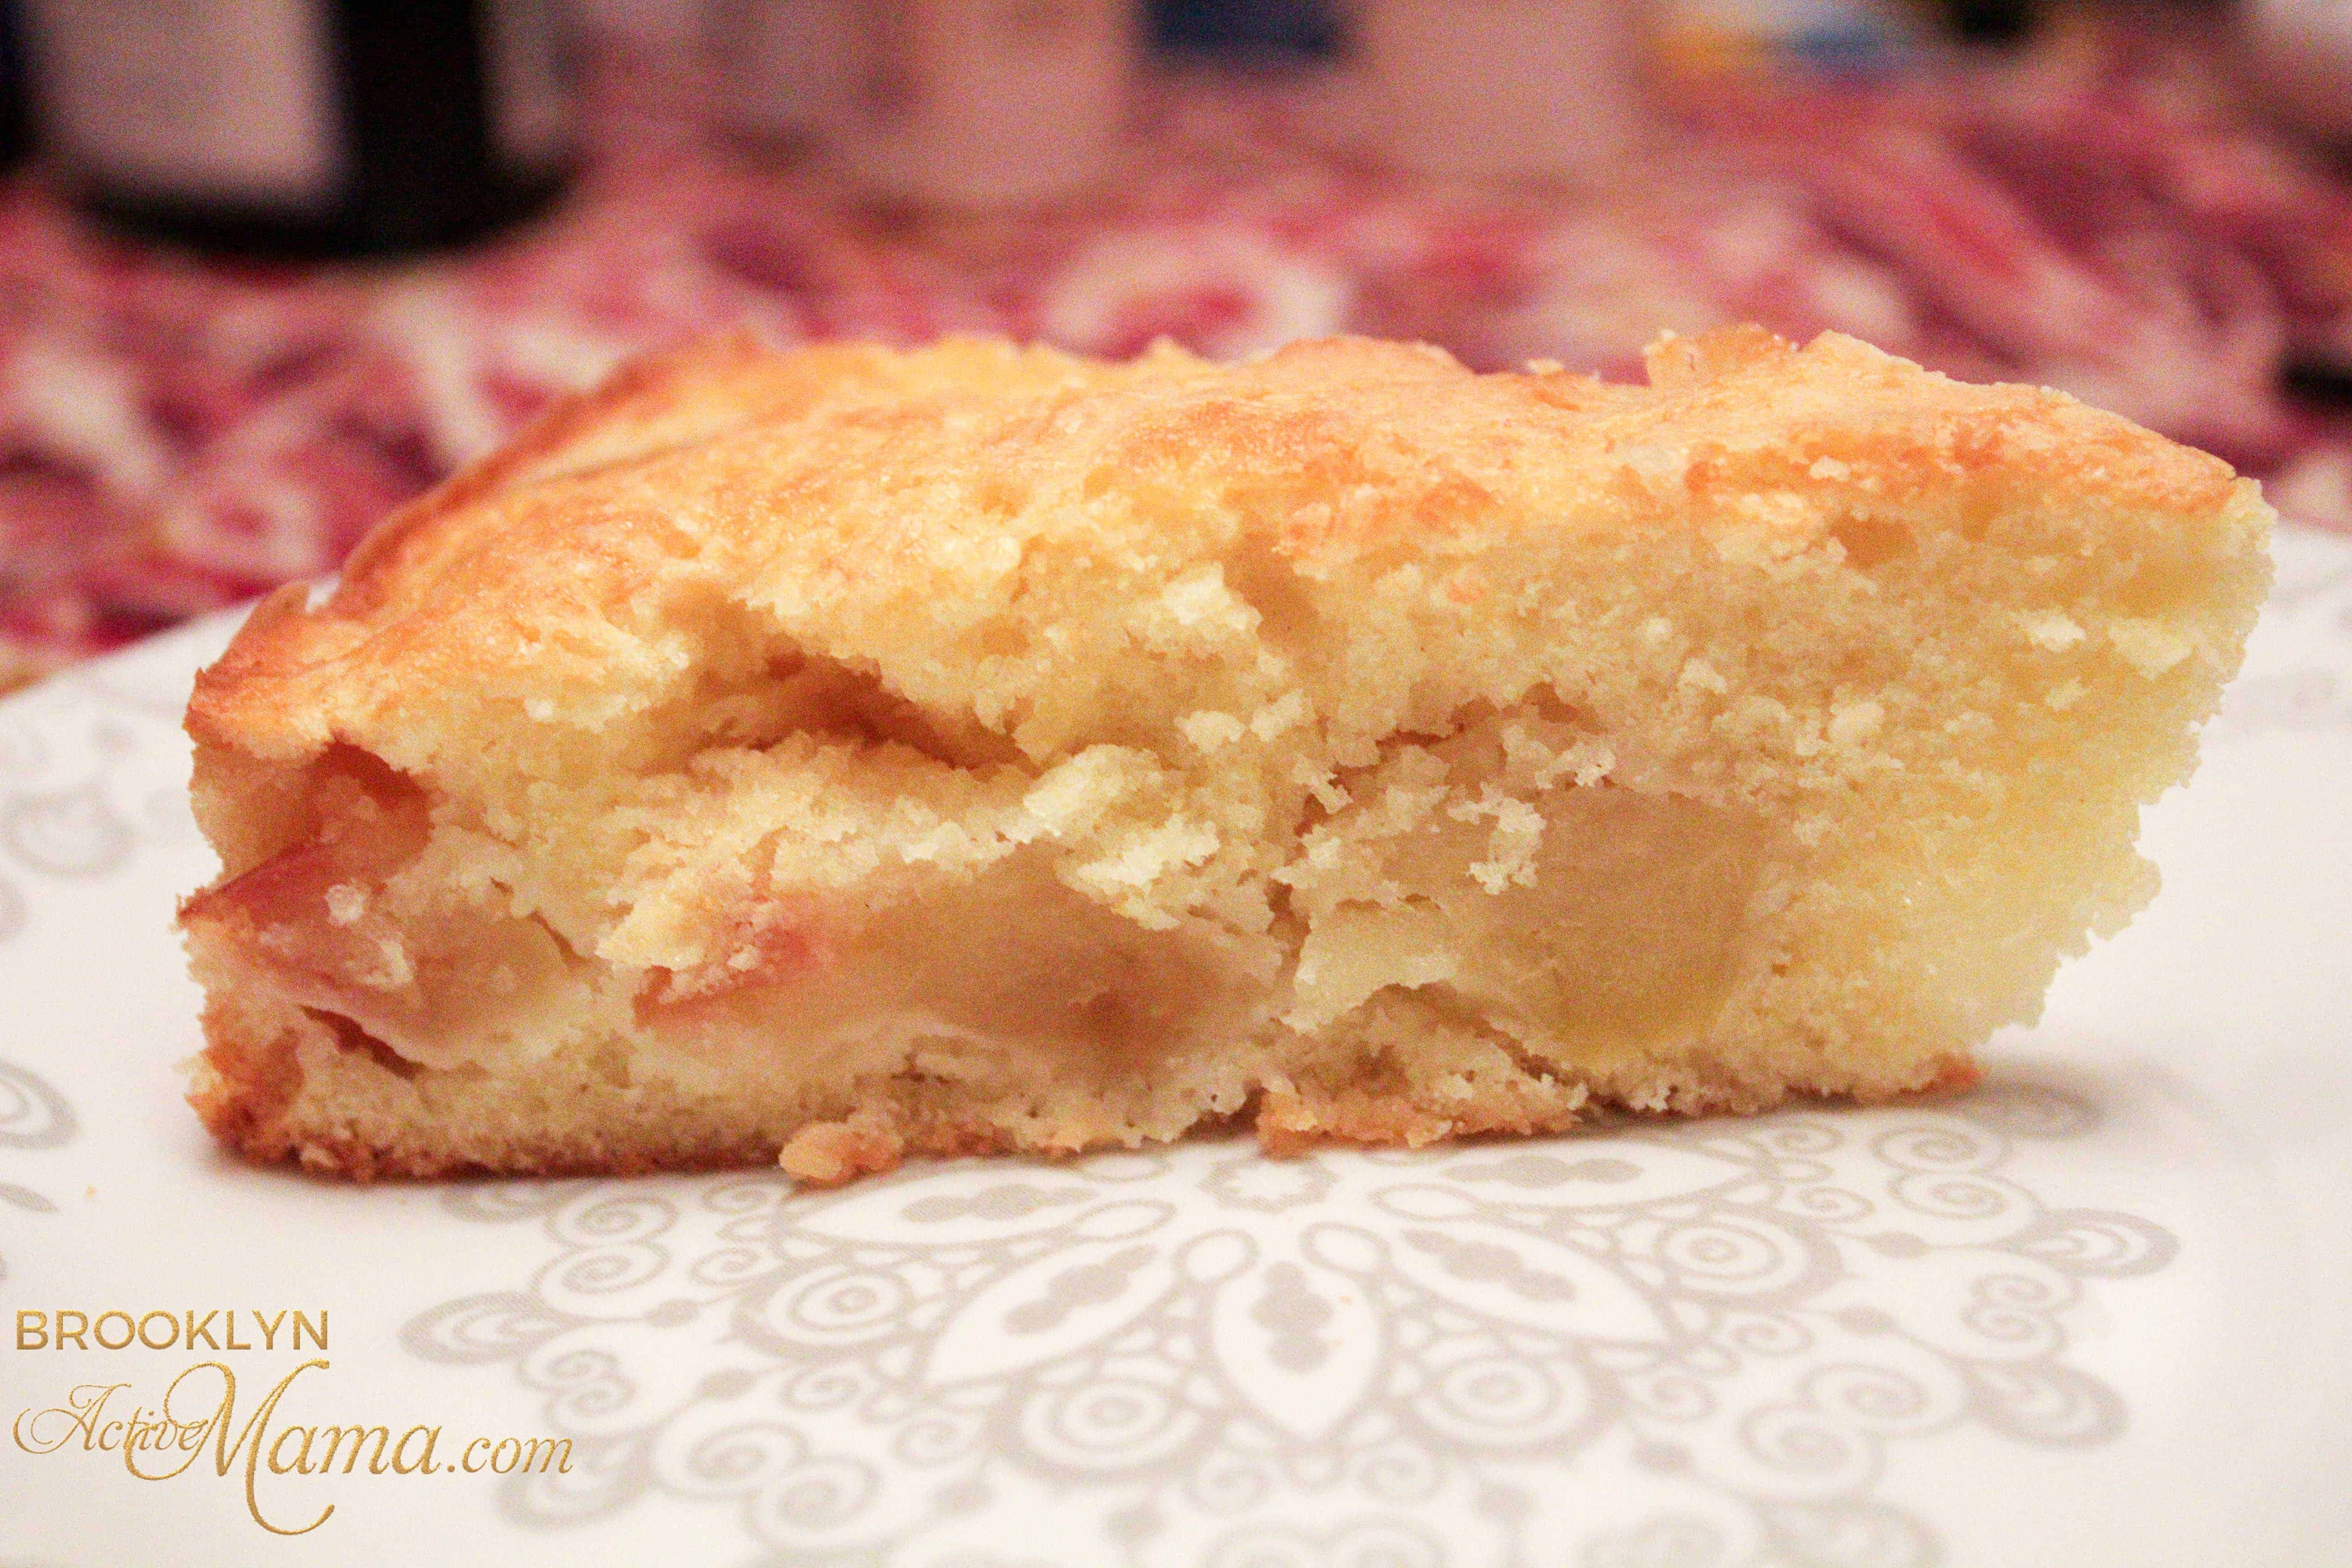 This amazing moist apple cake recipe is so perfect for the holidays. It is perfect with a little whipped cream or even ice cream. Served warm is even better! This recipe will be a hit for your family!